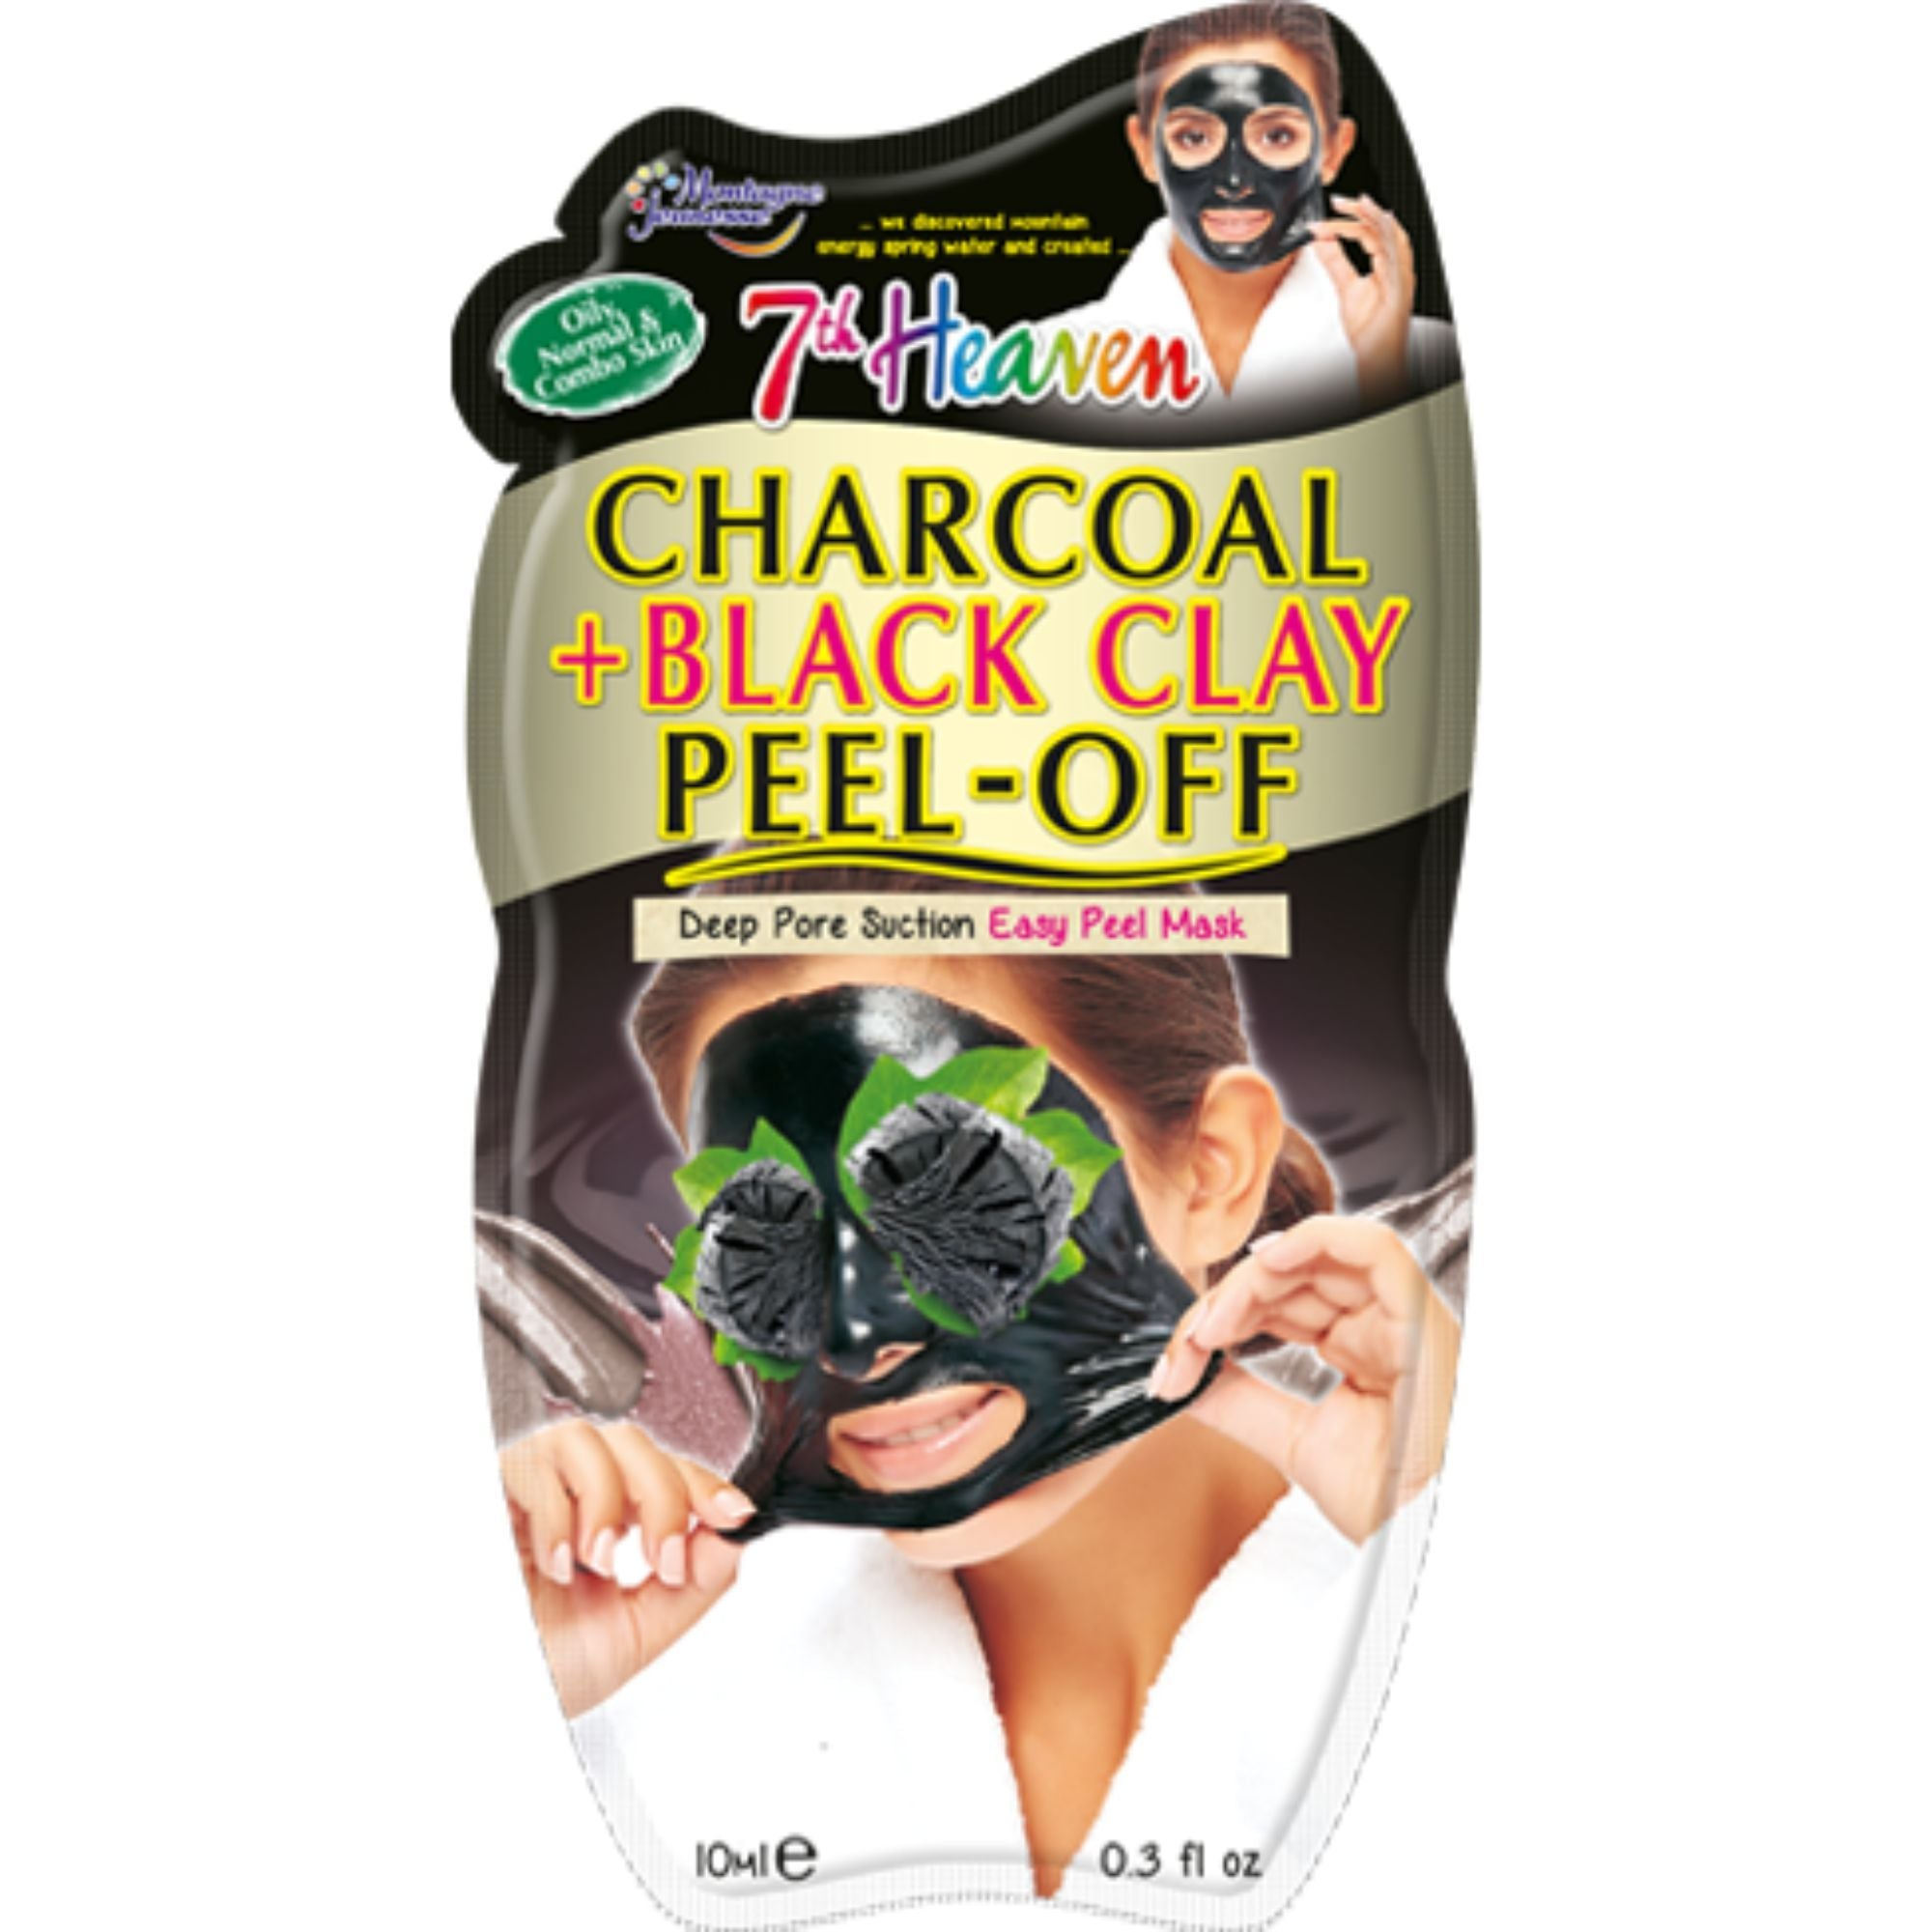 Charcoal & Black Clay Peel-Off Mask